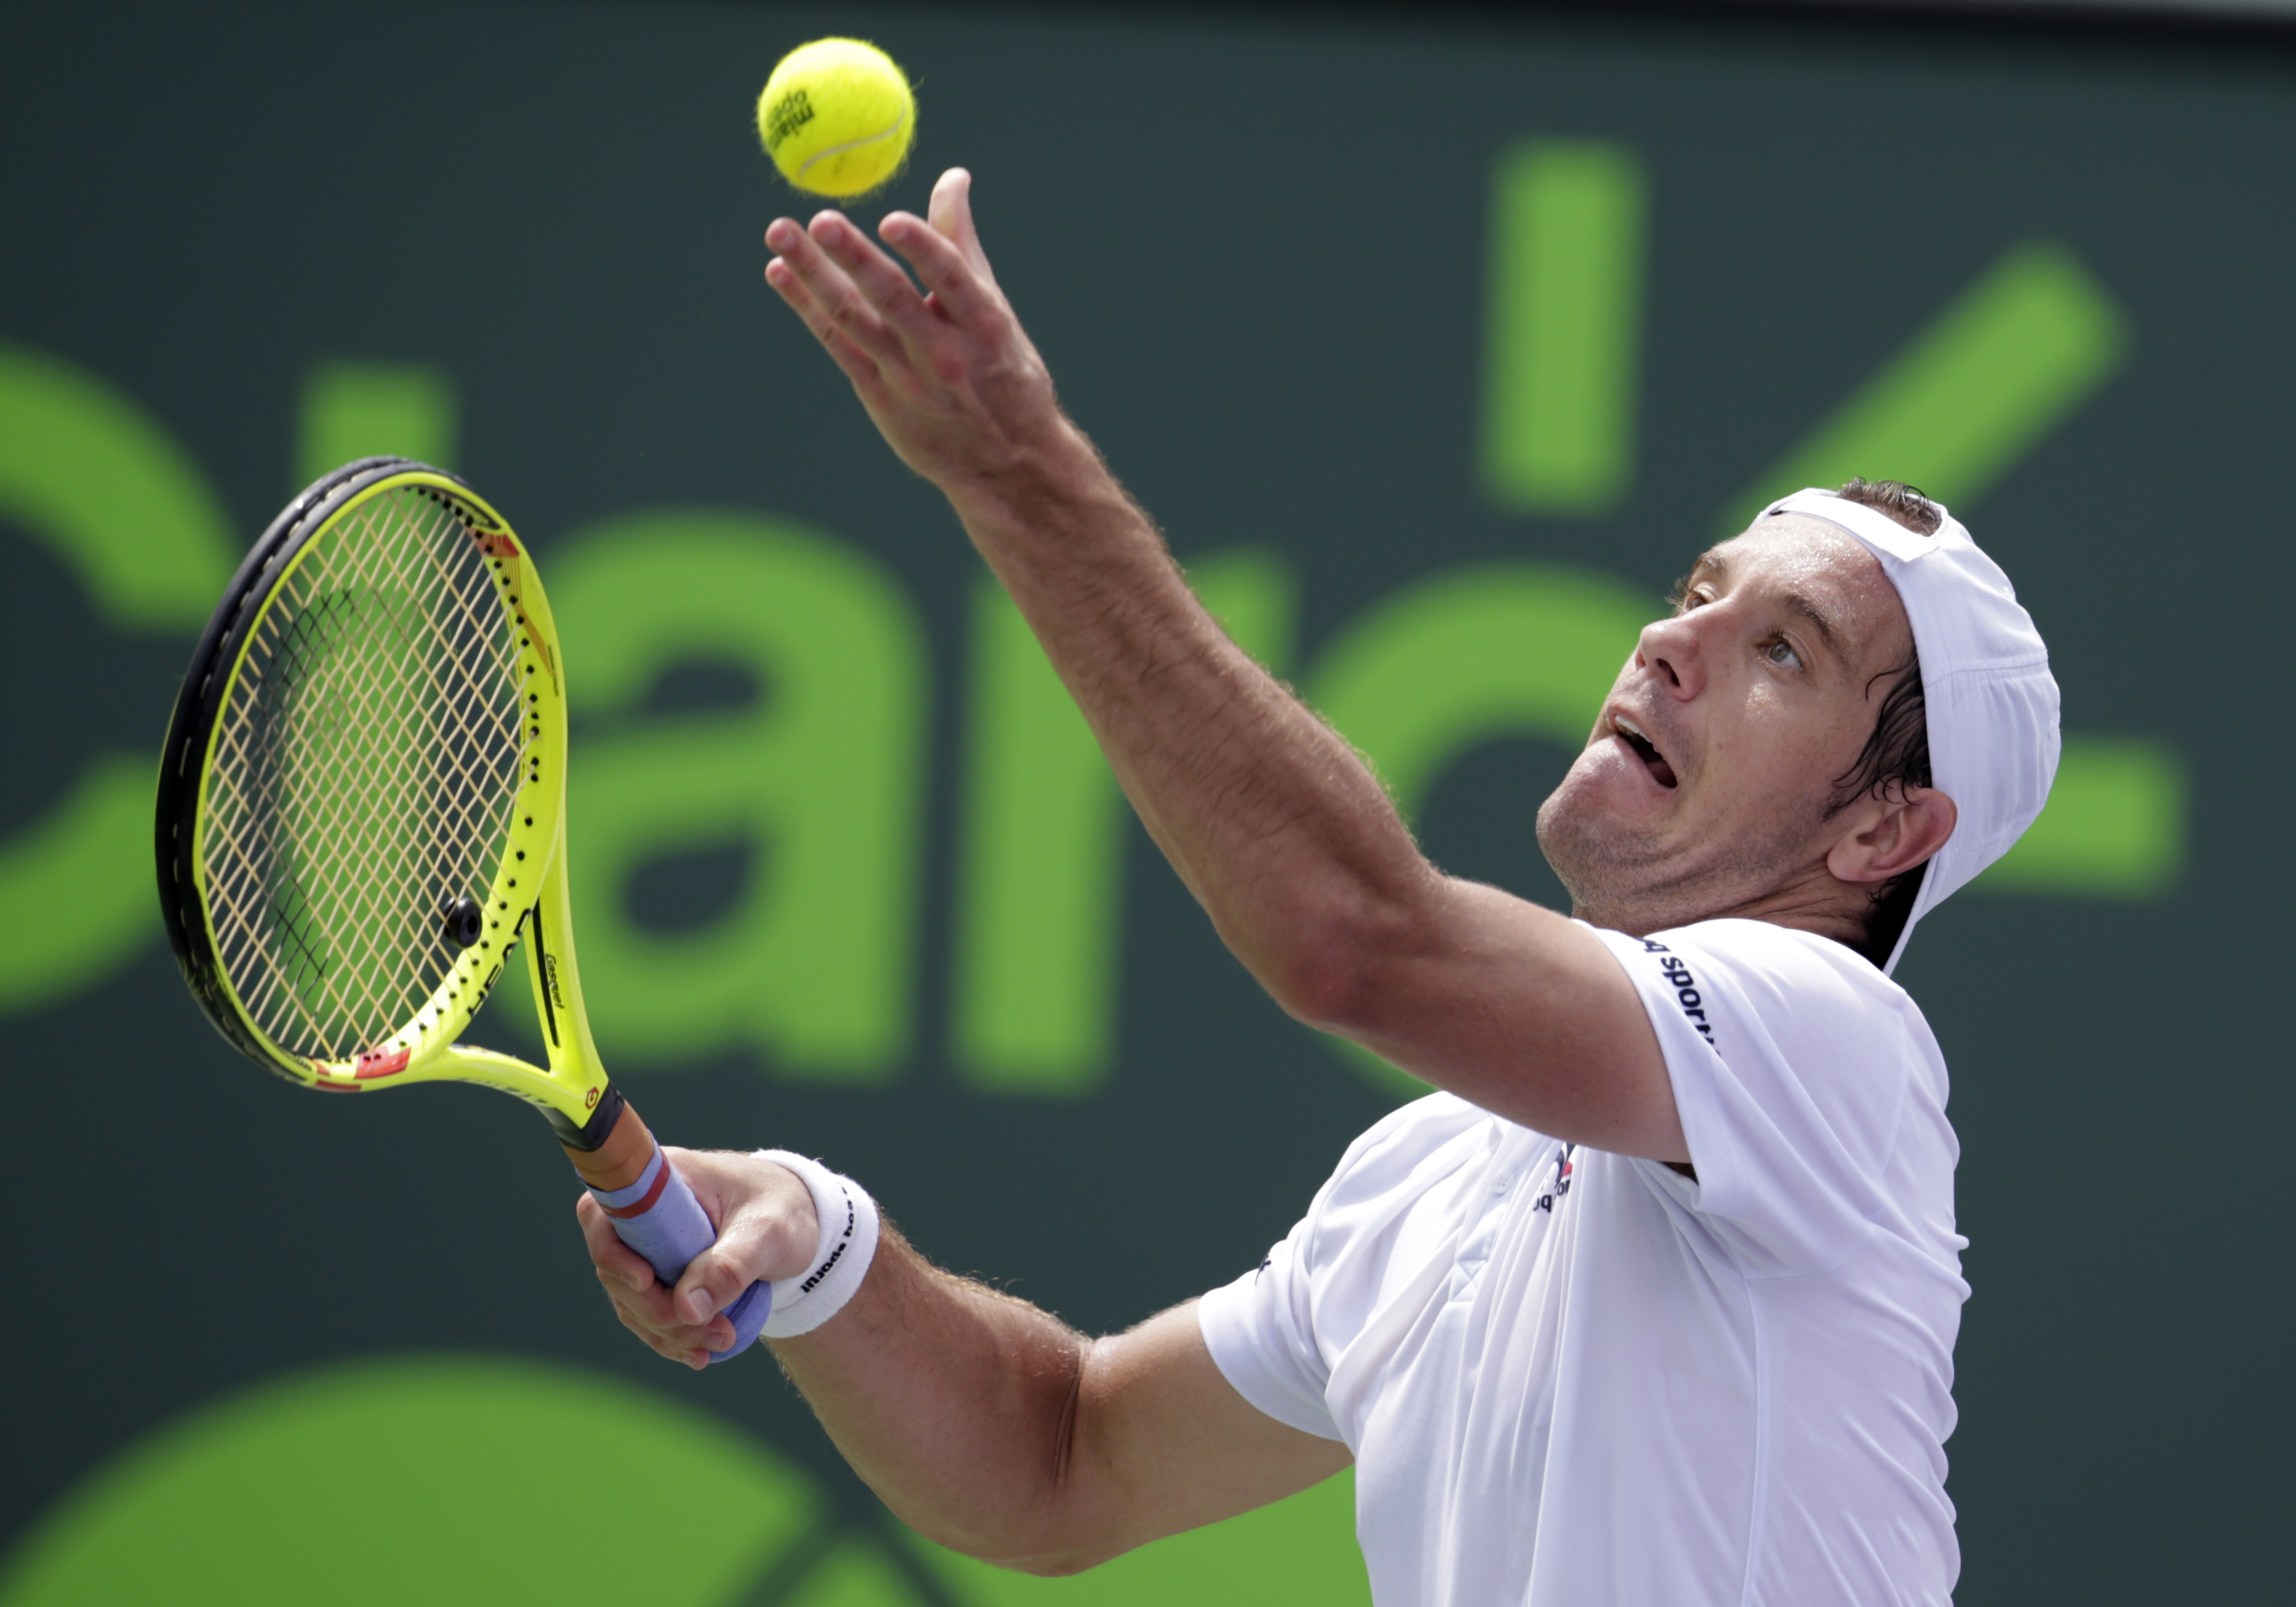 Richard Gasquet, of France, serves to Tomas Berdych during their match at the Miami Open tennis tournament, Tuesday, March 29, 2016, in Key Biscayne, Fla. Berdych won 6-4, 3-6, 7-5. (AP Photo/Lynne Sladky)